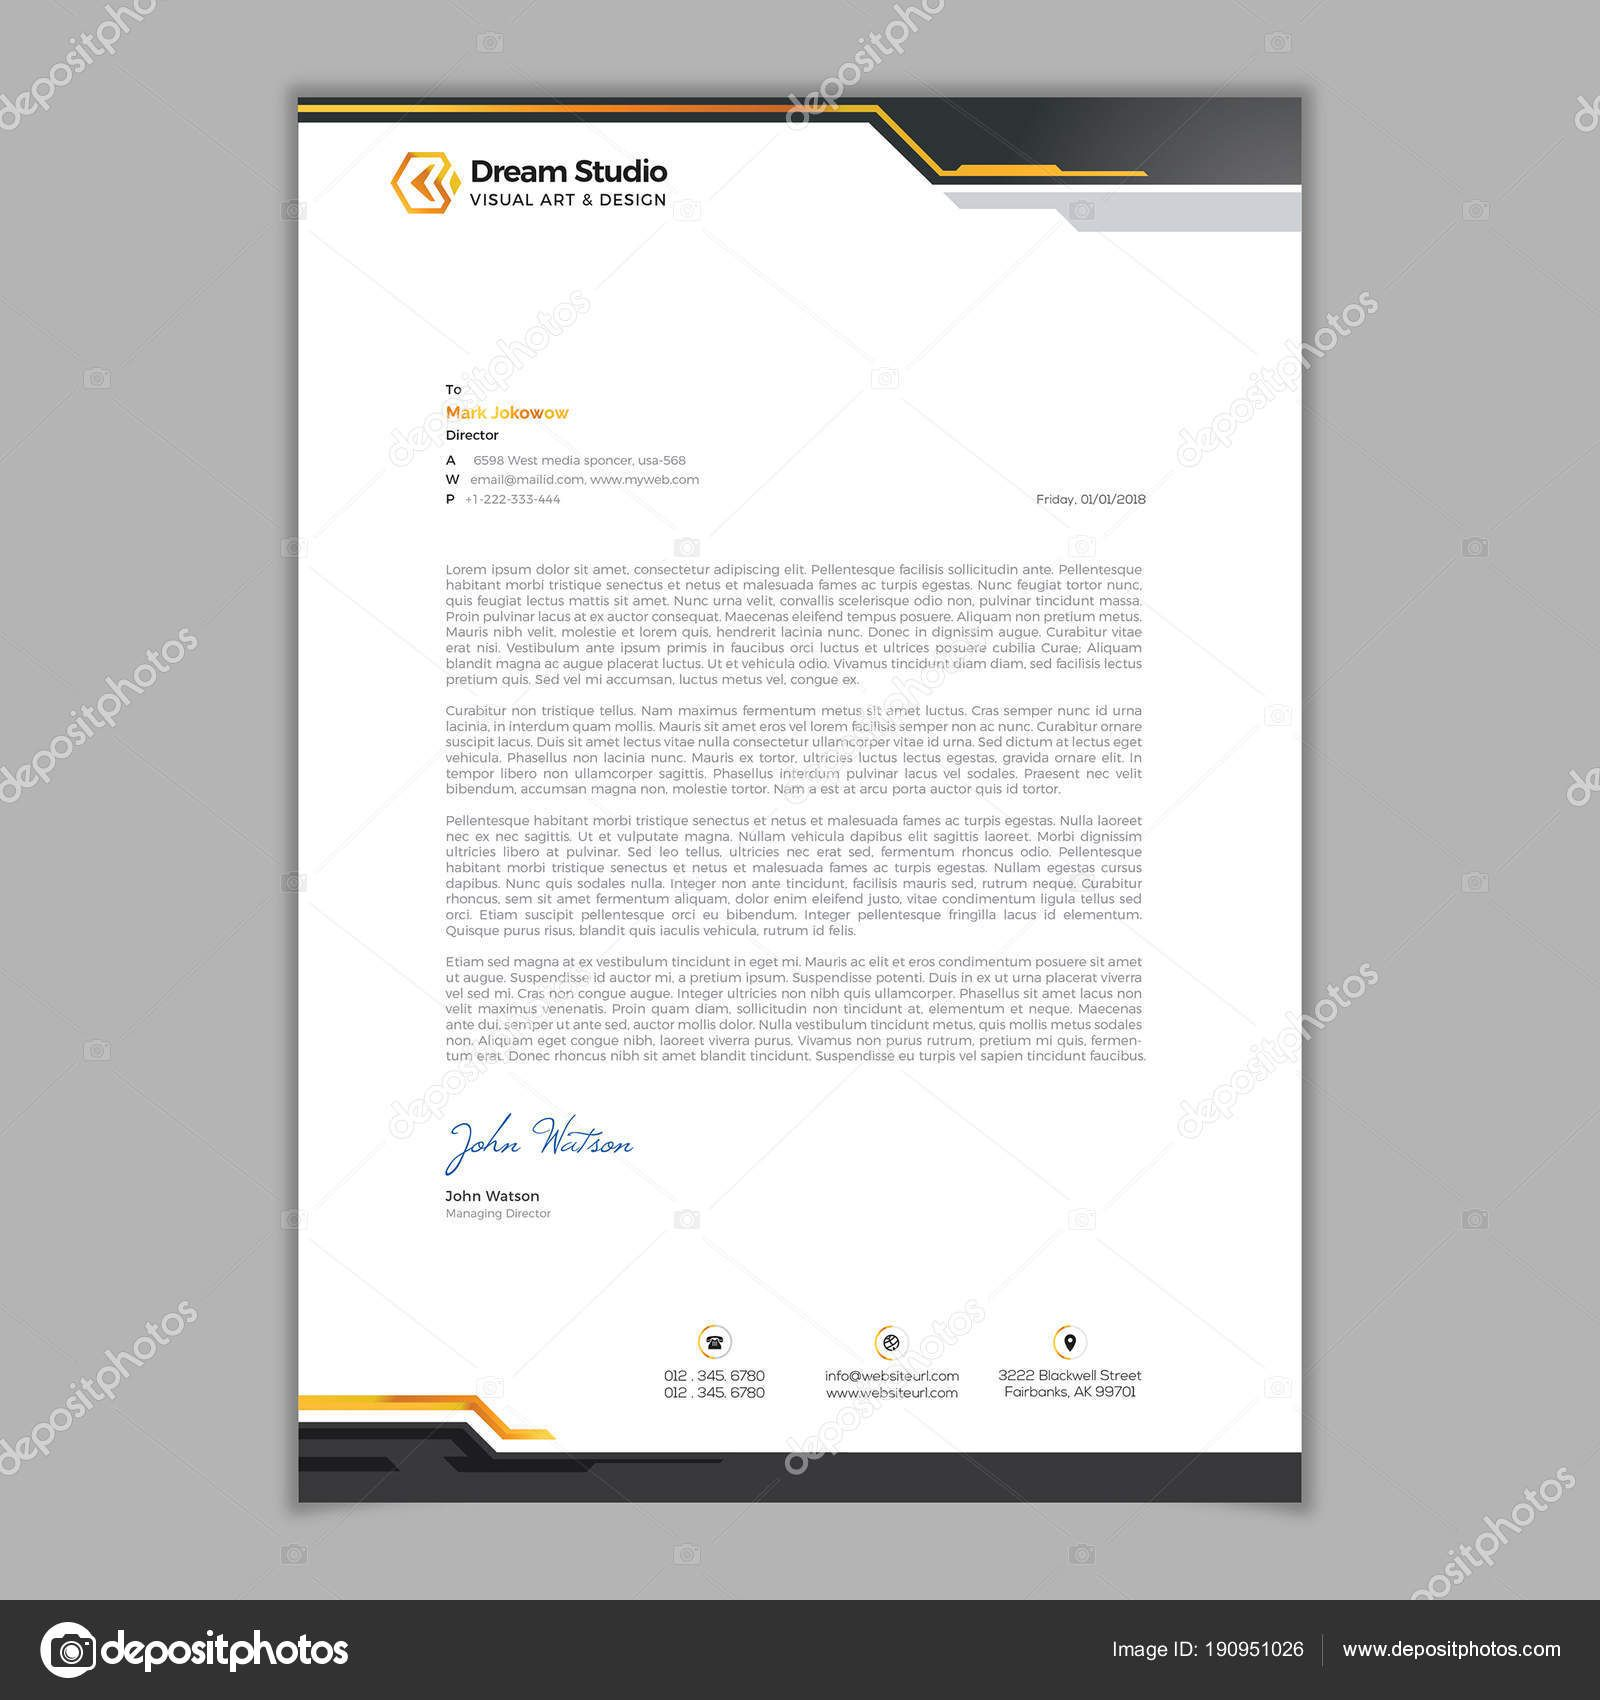 download modern company letterhead template — stock entry level pharmacy technician resume no experience data center engineer sample cv examples word